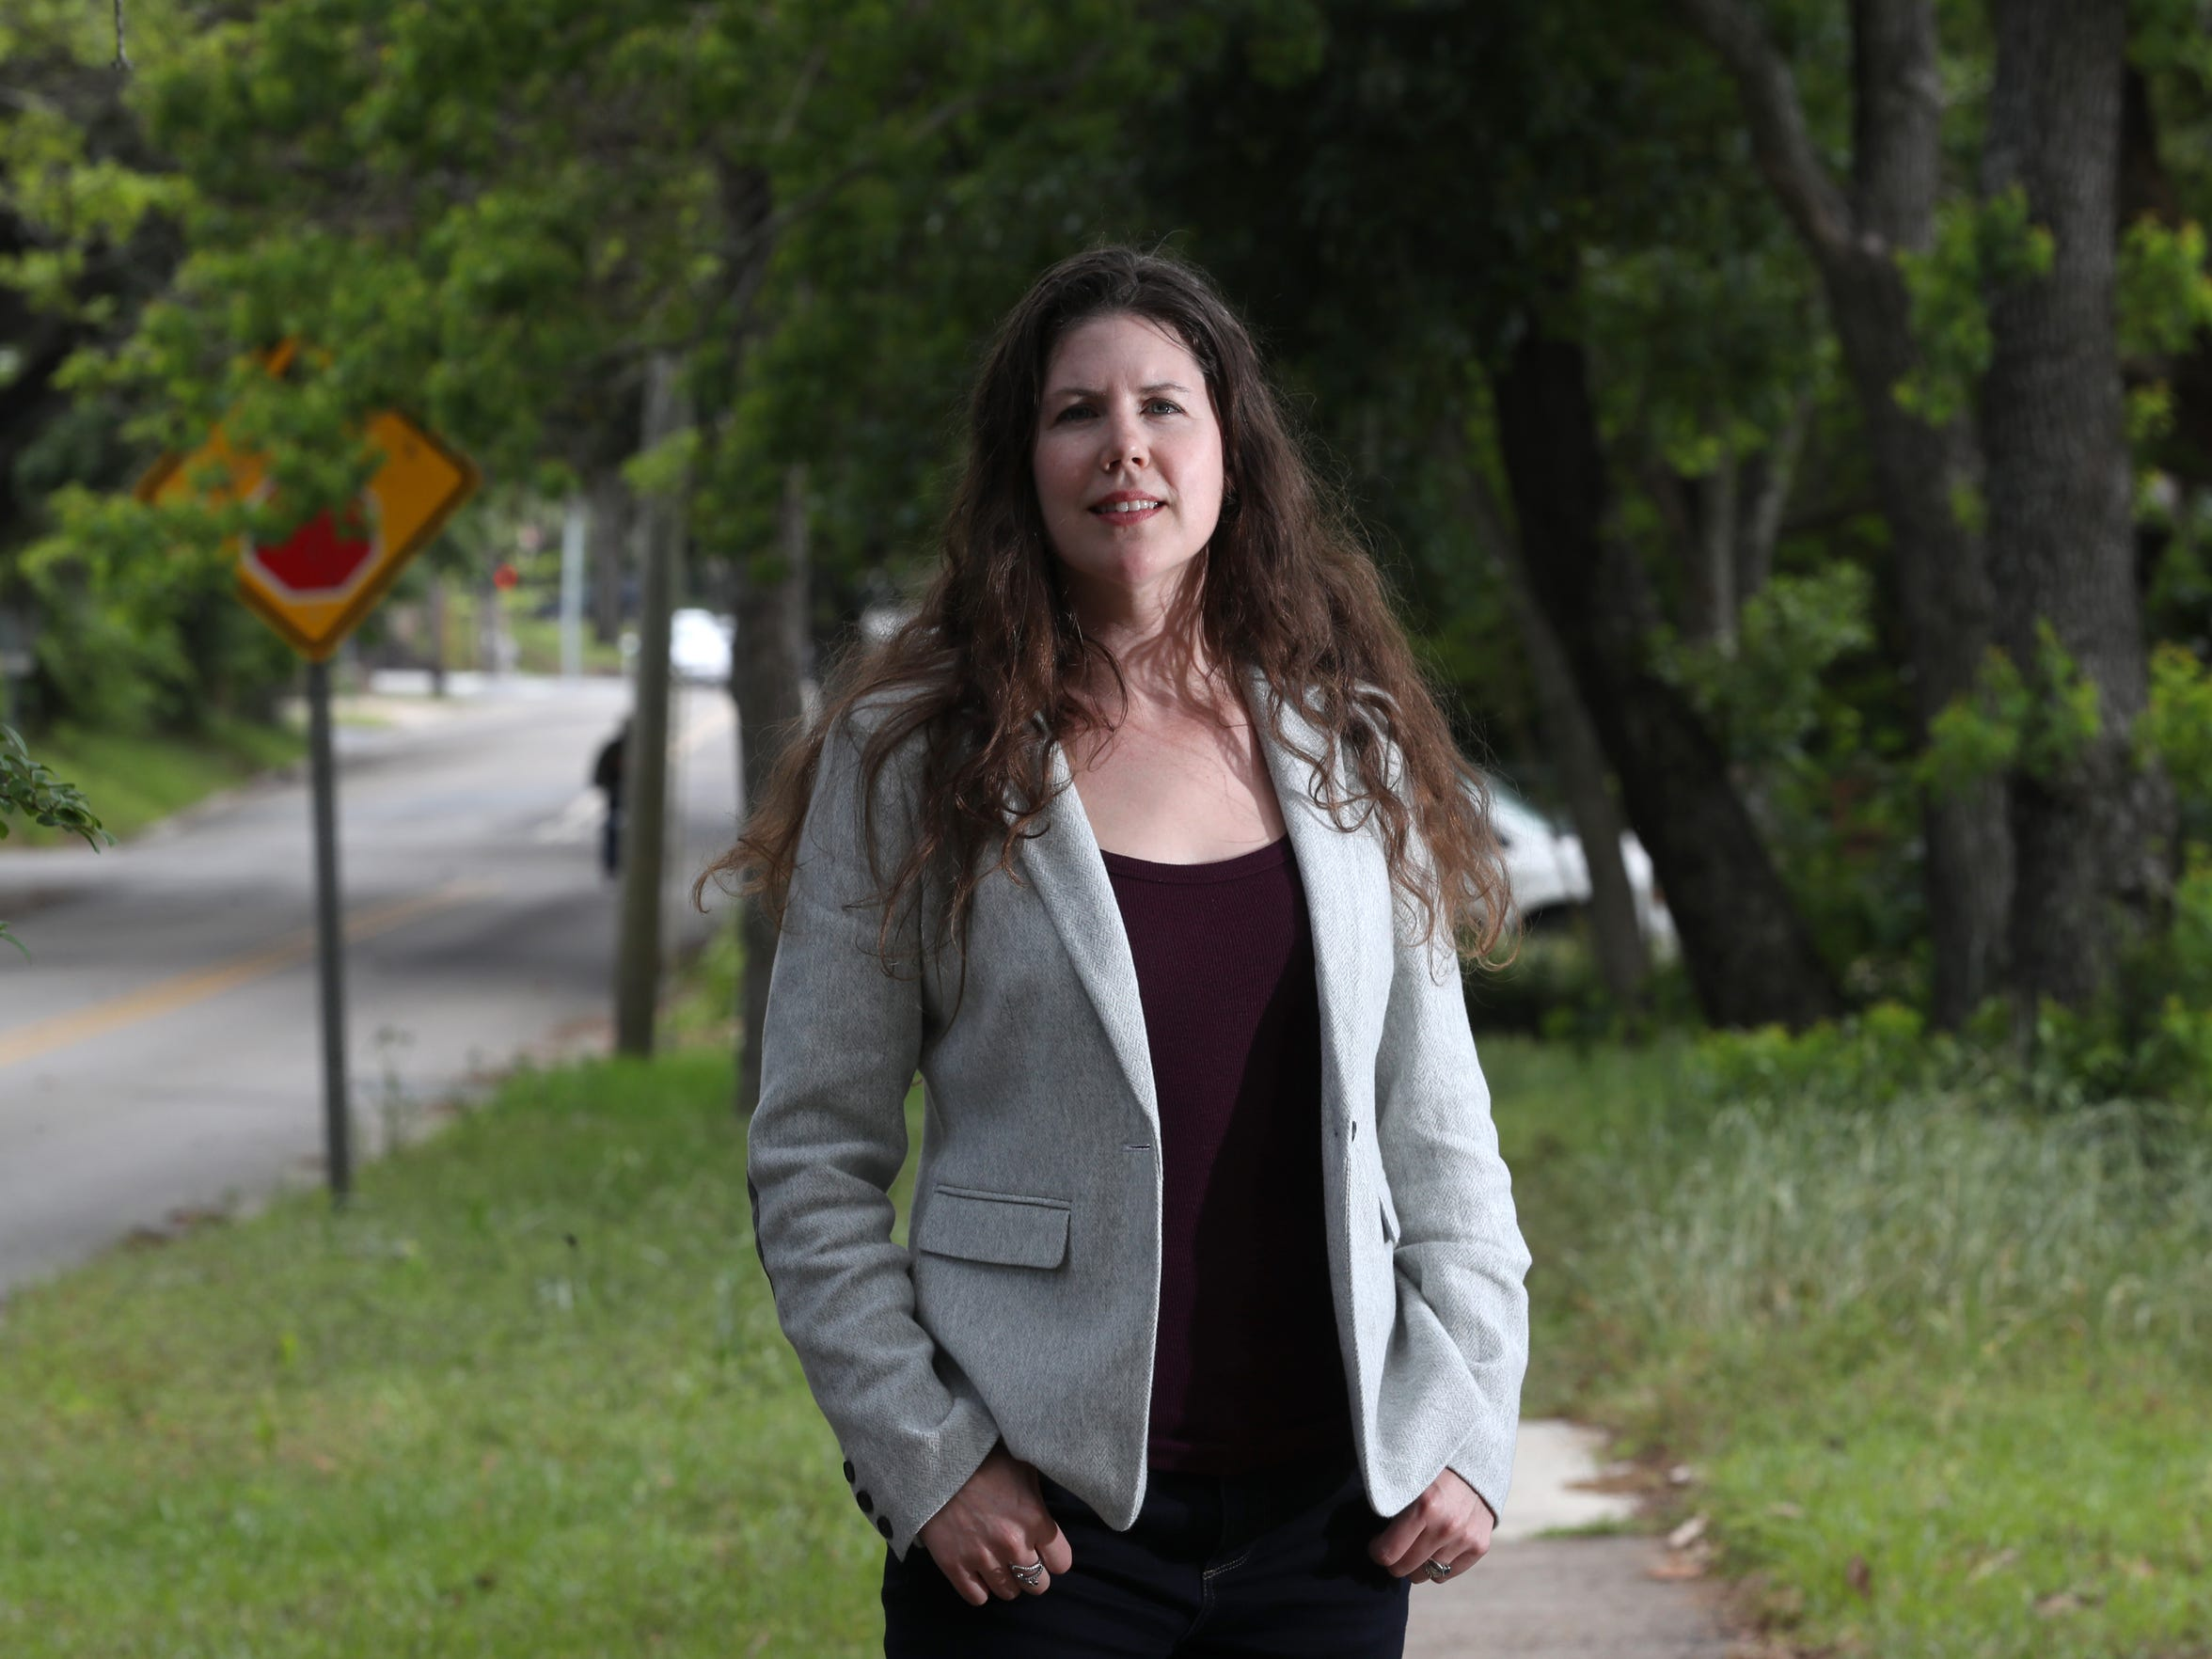 Mindy Mohrman, Tallahassee's Leon County urban forester